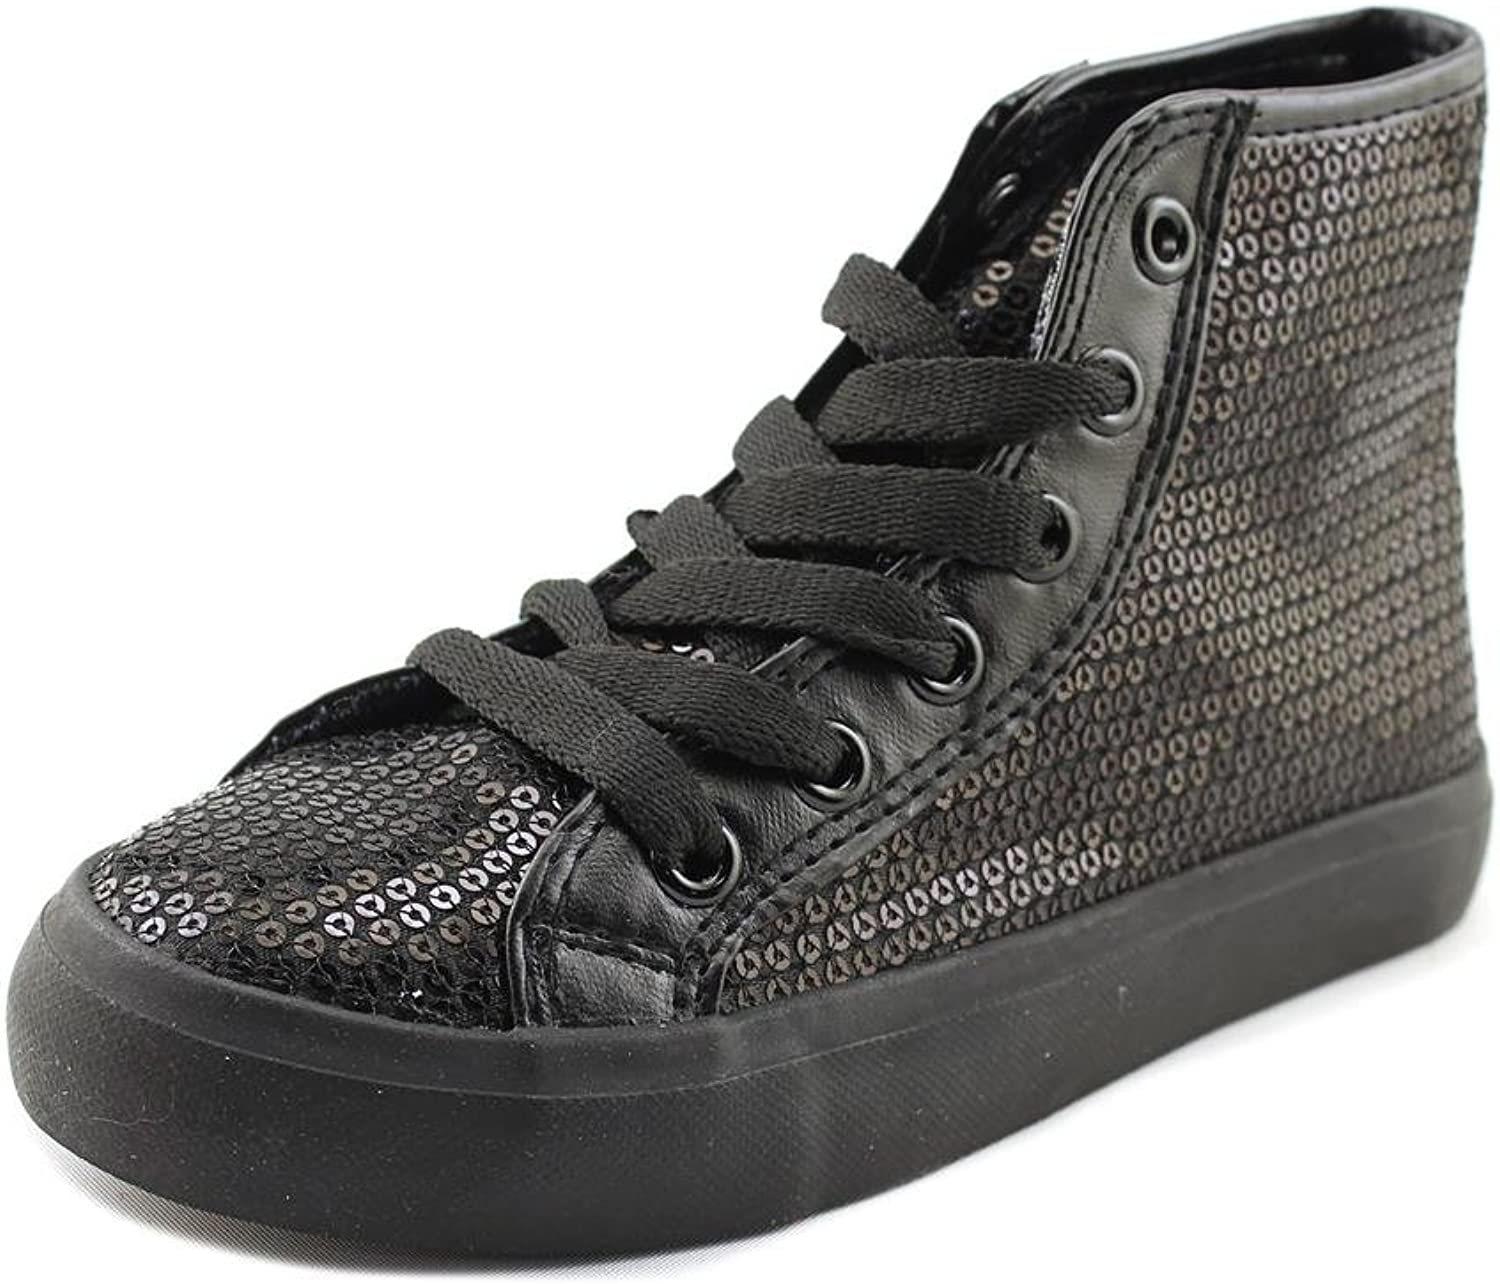 Gotta Flurt Disco II HI G High Top Sneaker